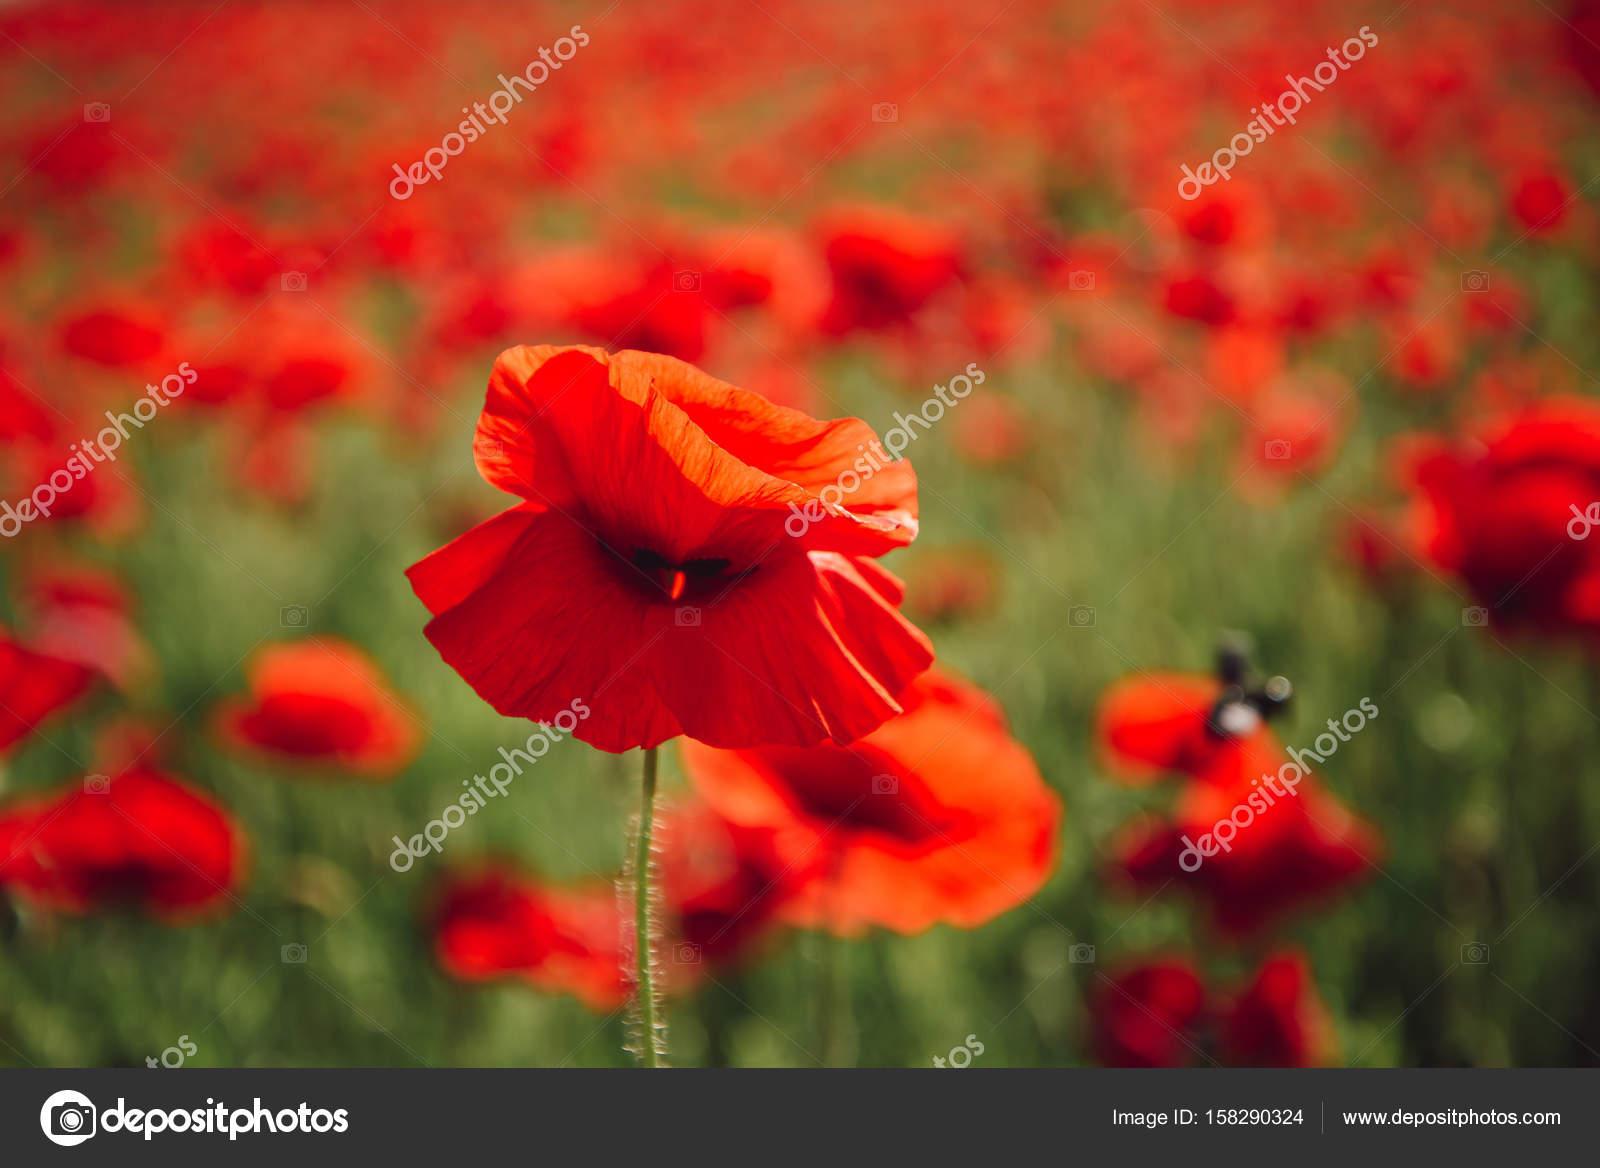 Beauty In Nature Field Of Red Poppy Seed Flower Background Stock